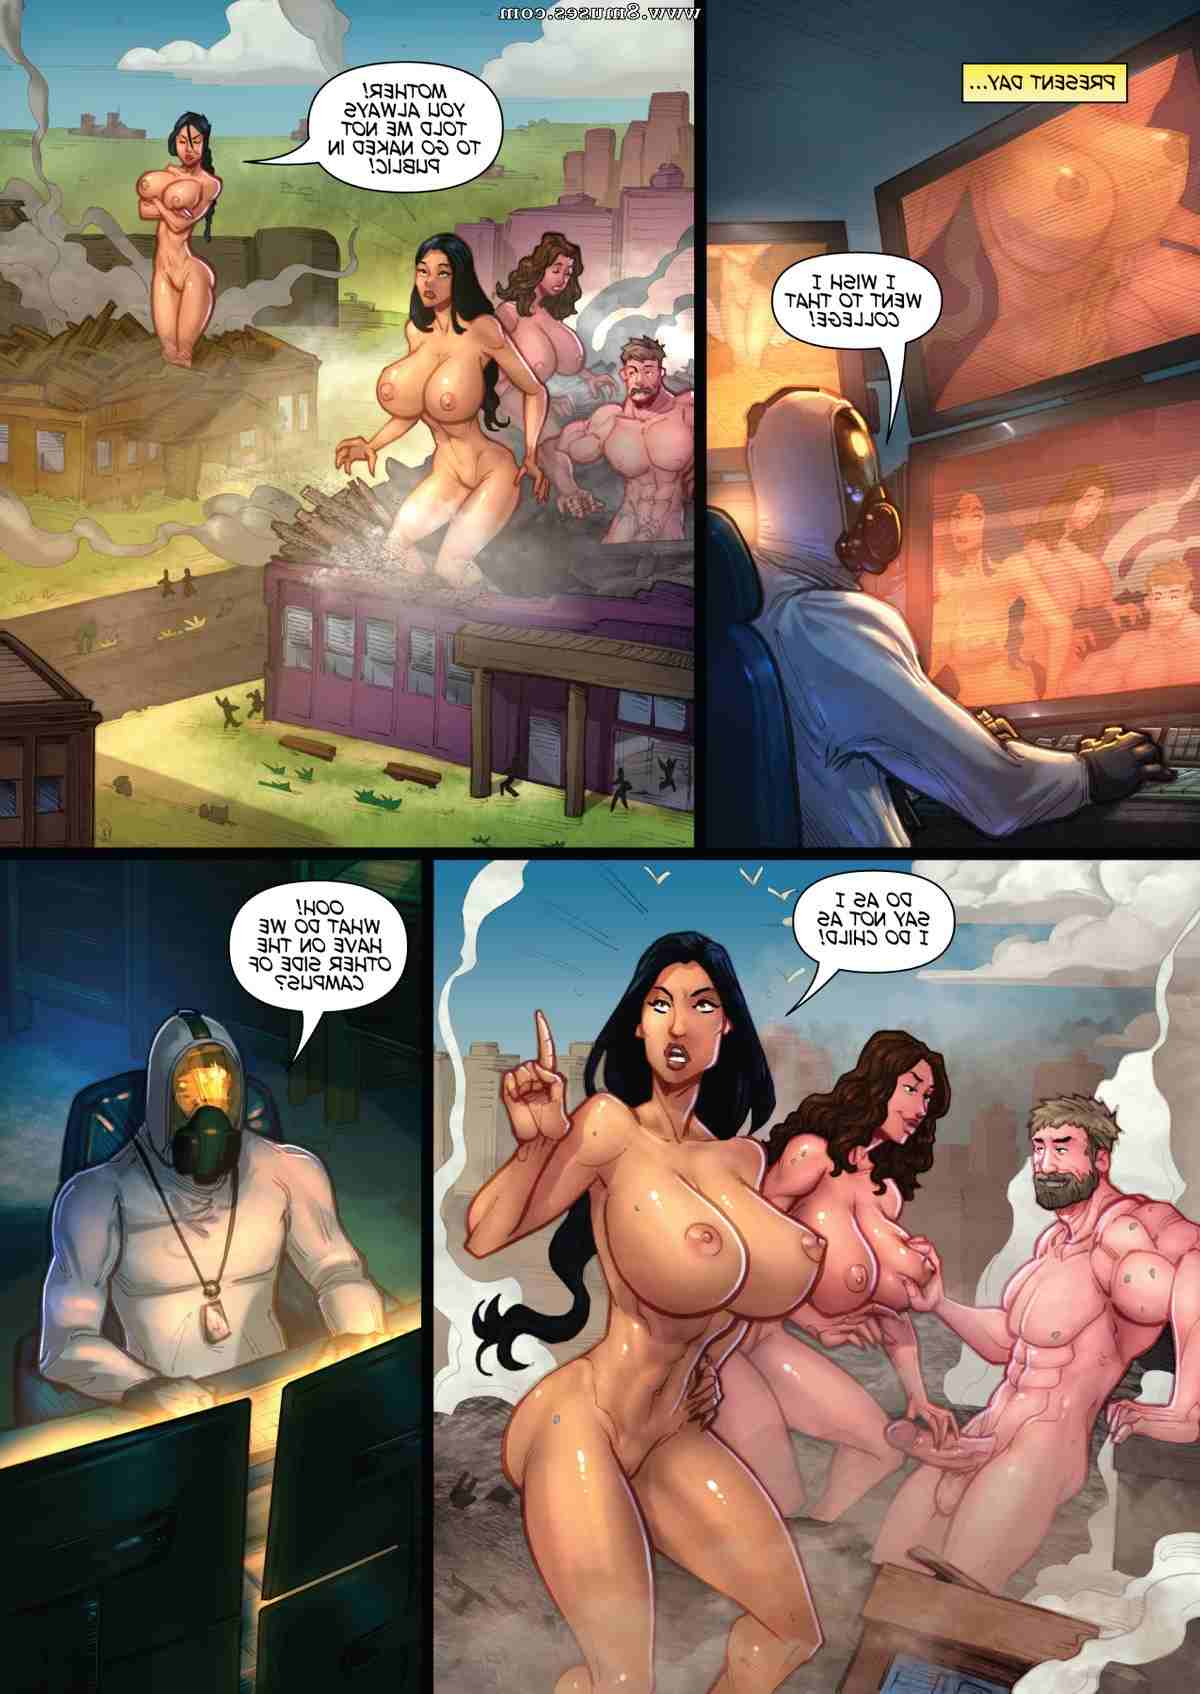 ZZZ-Comics/Everything-Grown Everything_Grown__8muses_-_Sex_and_Porn_Comics_5.jpg